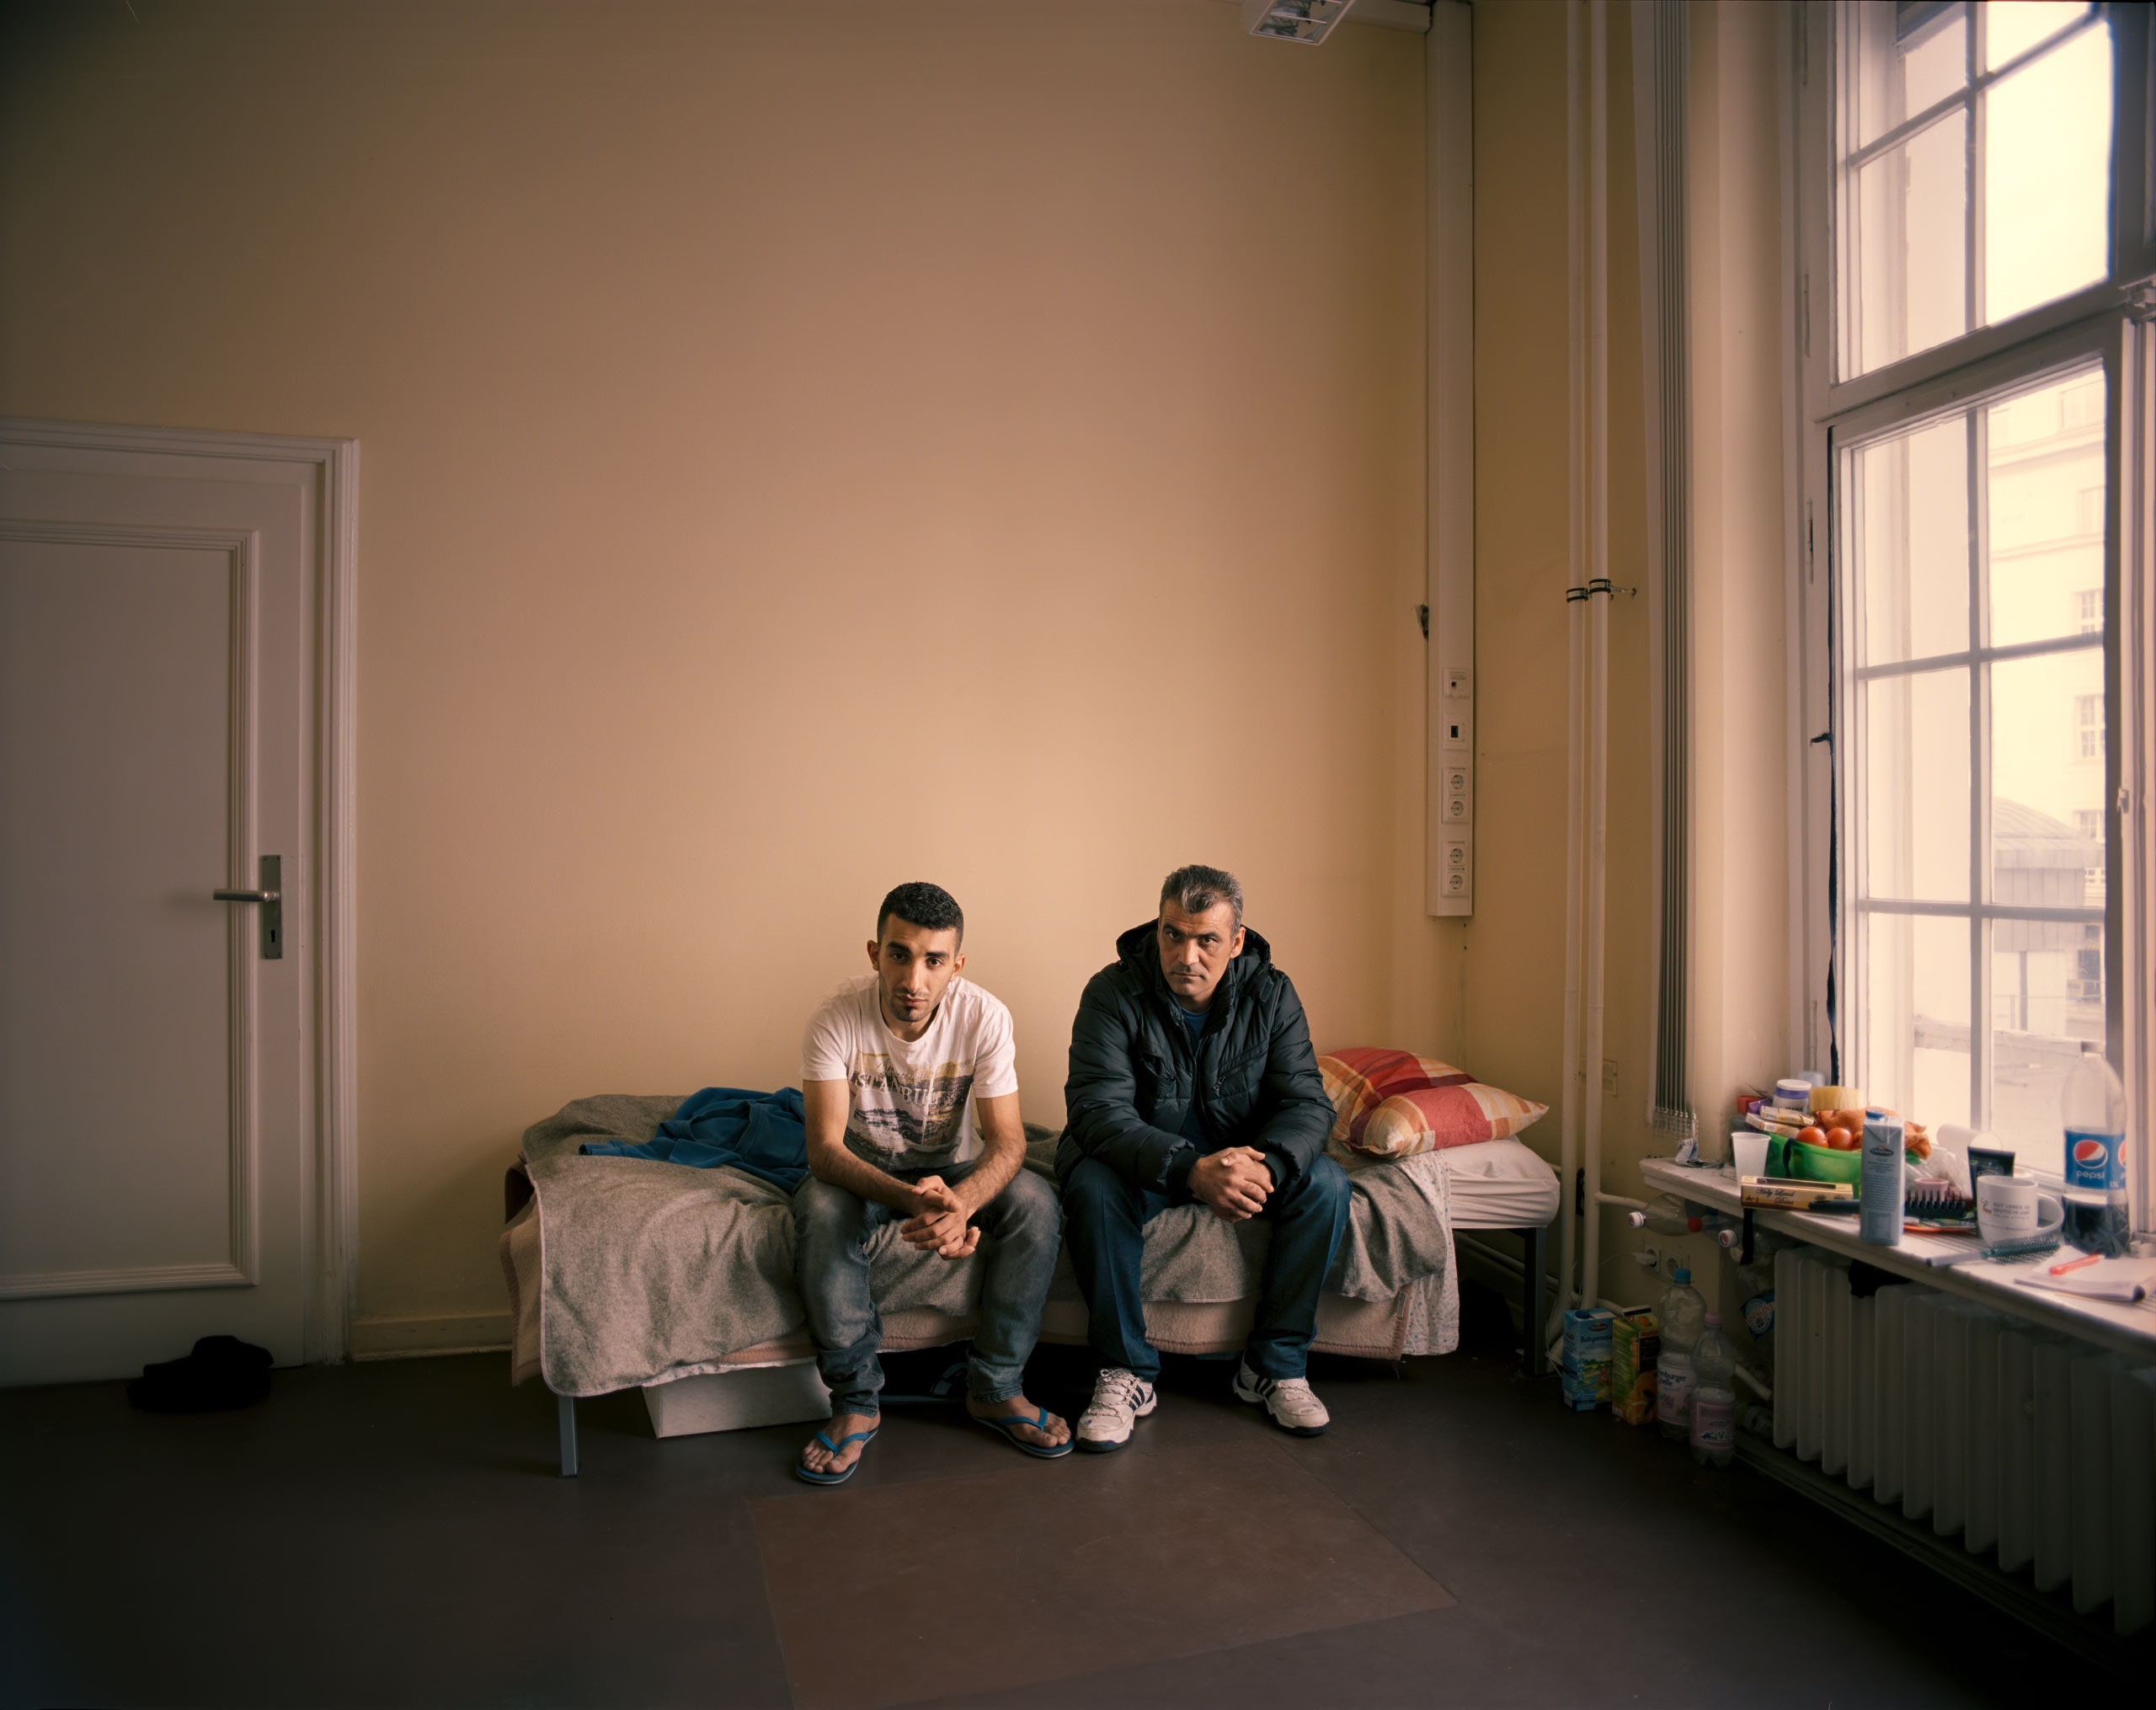 "Alaa Maaz, 23, left, with his cousin, Ibrahim Maaz, 35, in the Wilmersdorf refugee shelter in Berlin. Both men are from Aleppo, Syria and have yet to receive their asylum papers.                                                              ""In Syria before the war, I was very happy. Nothing was missing from my life,  says Ibrahim.  Now everything is gone, my brother is gone. My mother is in a small village near the border called Bab al-Hawa, which isn't that safe. She can't walk so she can't go to Turkey. All I want to know is how I can bring my wife and family here from Turkey. Nobody tells me about the procedures.""                                                              ""Of course I want to stay here and build my life,  Alaa says.  There is no hope to go back home."